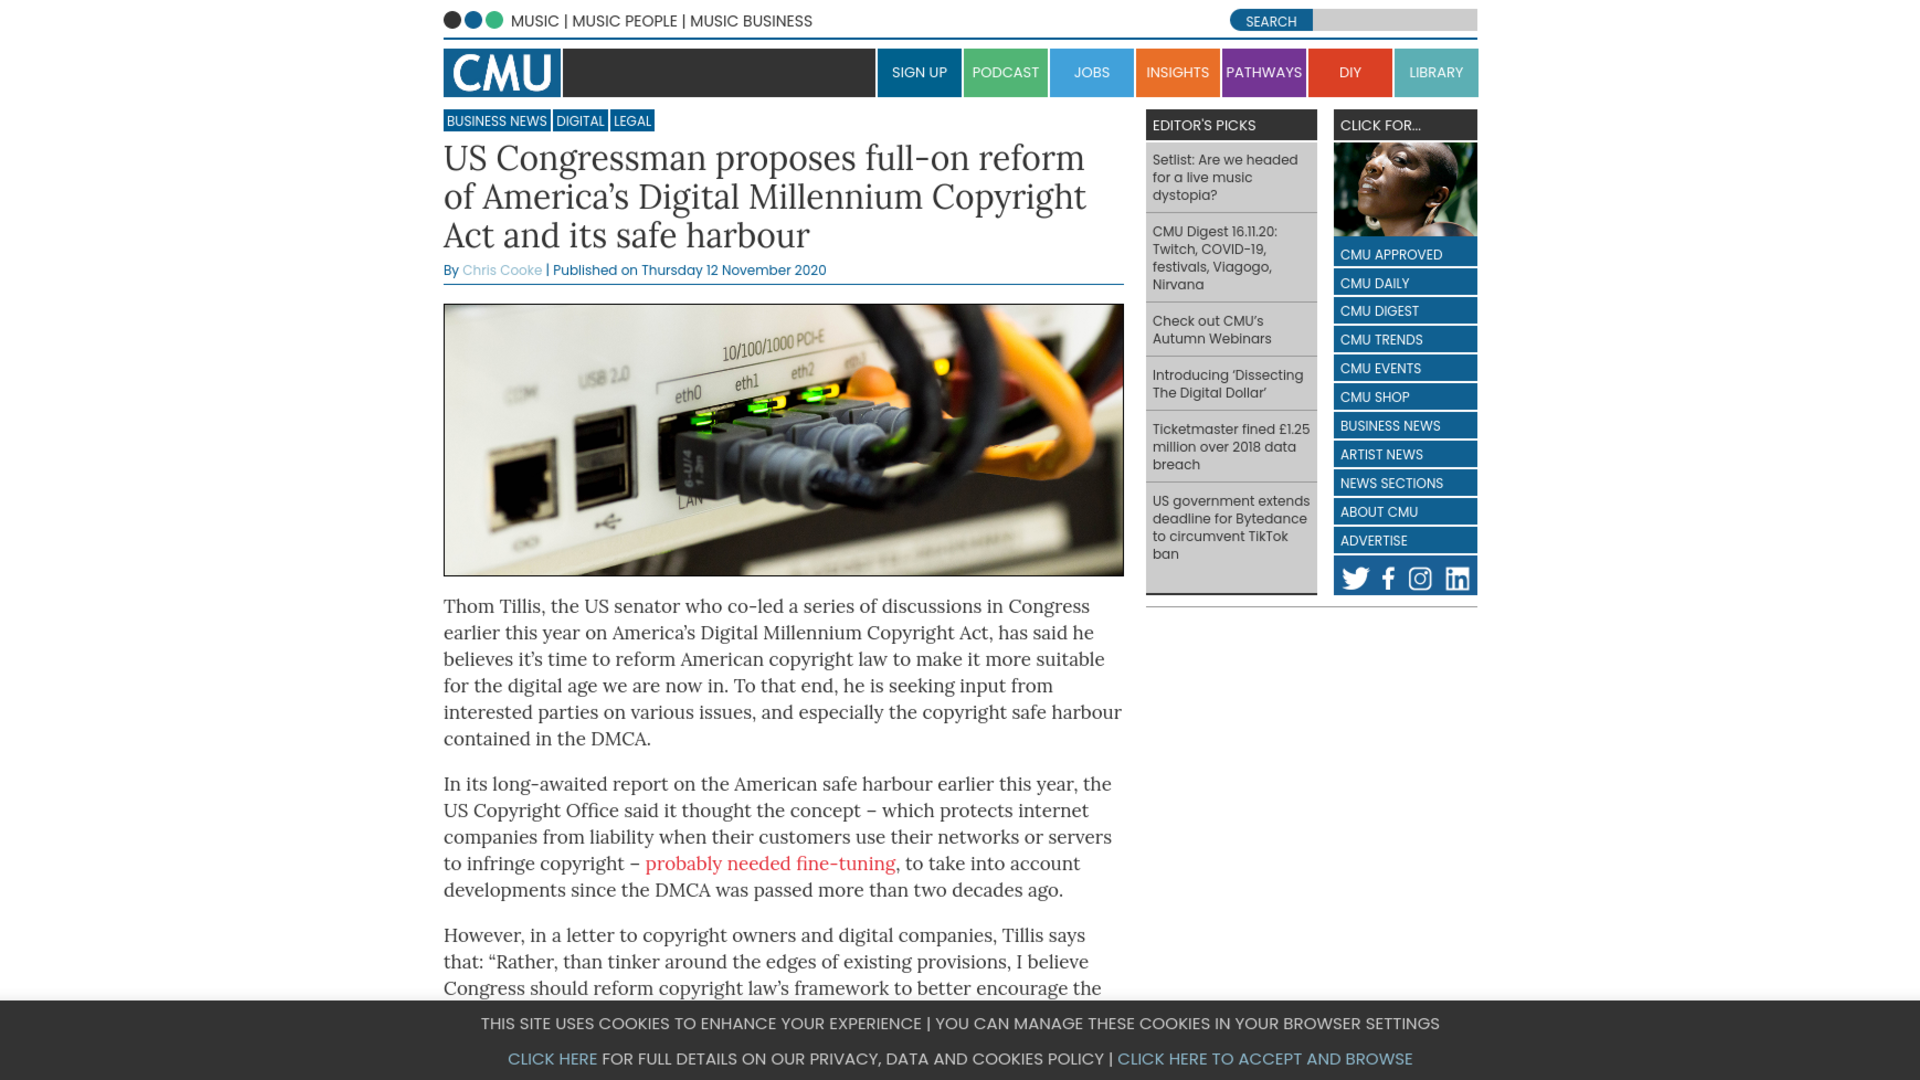 Fairness Rocks News US Congressman proposes full-on reform of America's Digital Millennium Copyright Act and its safe harbour